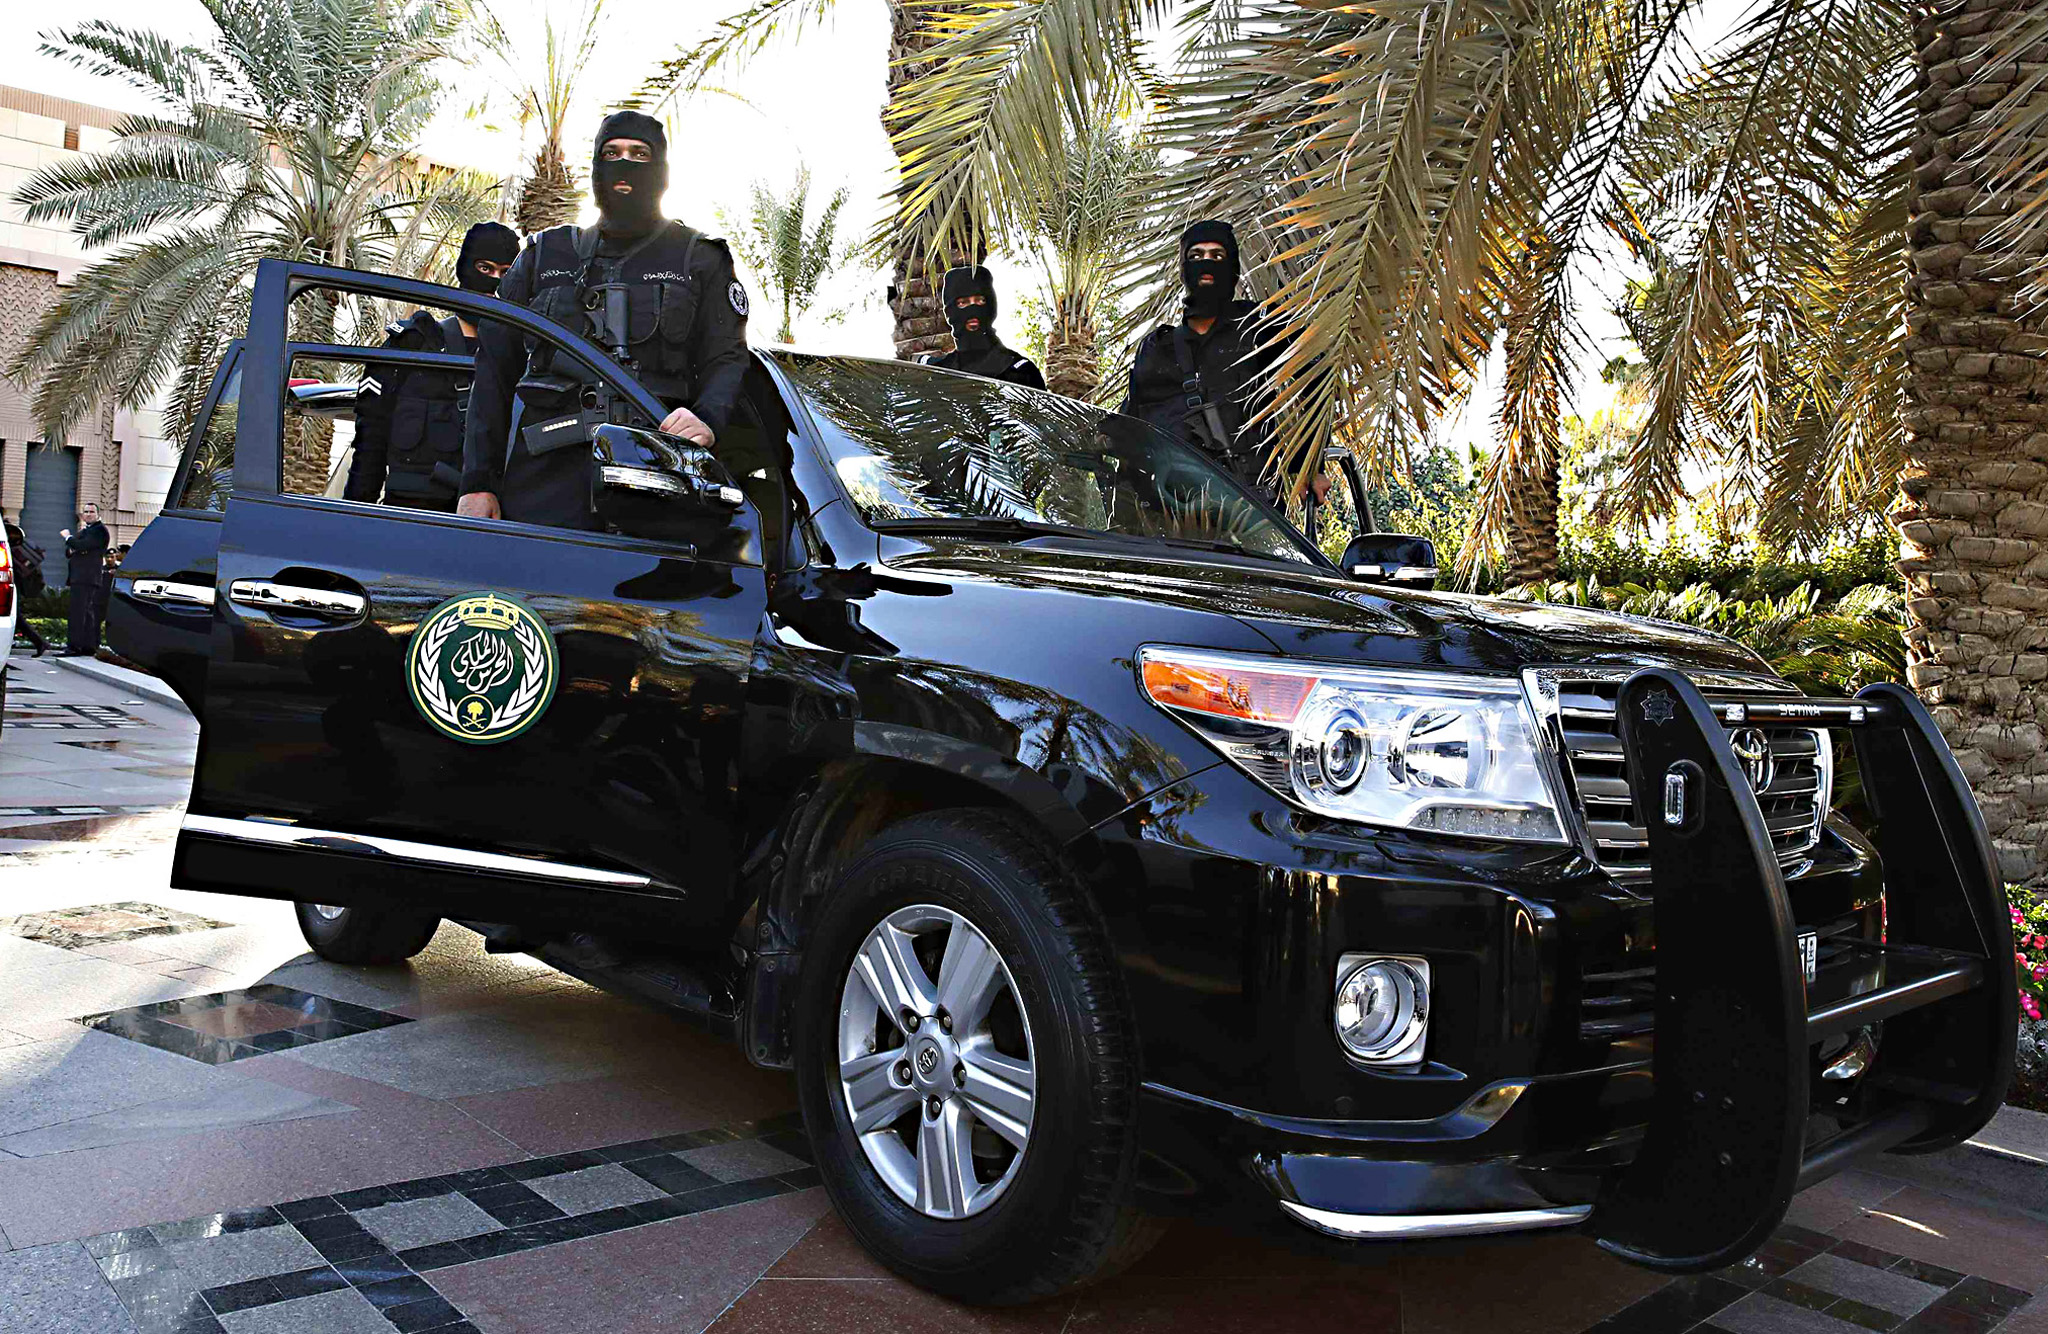 Saudi commandos guard the front of Erga Palace as U.S. President Barack Obama arrives to meet with Saudi Arabia's King Salman in Riyadh January 27, 2015. Obama sought to cement ties with Saudi Arabia as he came to pay his respects on Tuesday after the death of King Abdullah, a trip that underscores the importance of a U.S.-Saudi alliance that extends beyond oil interests to regional security. REUTERS/Jim Bourg